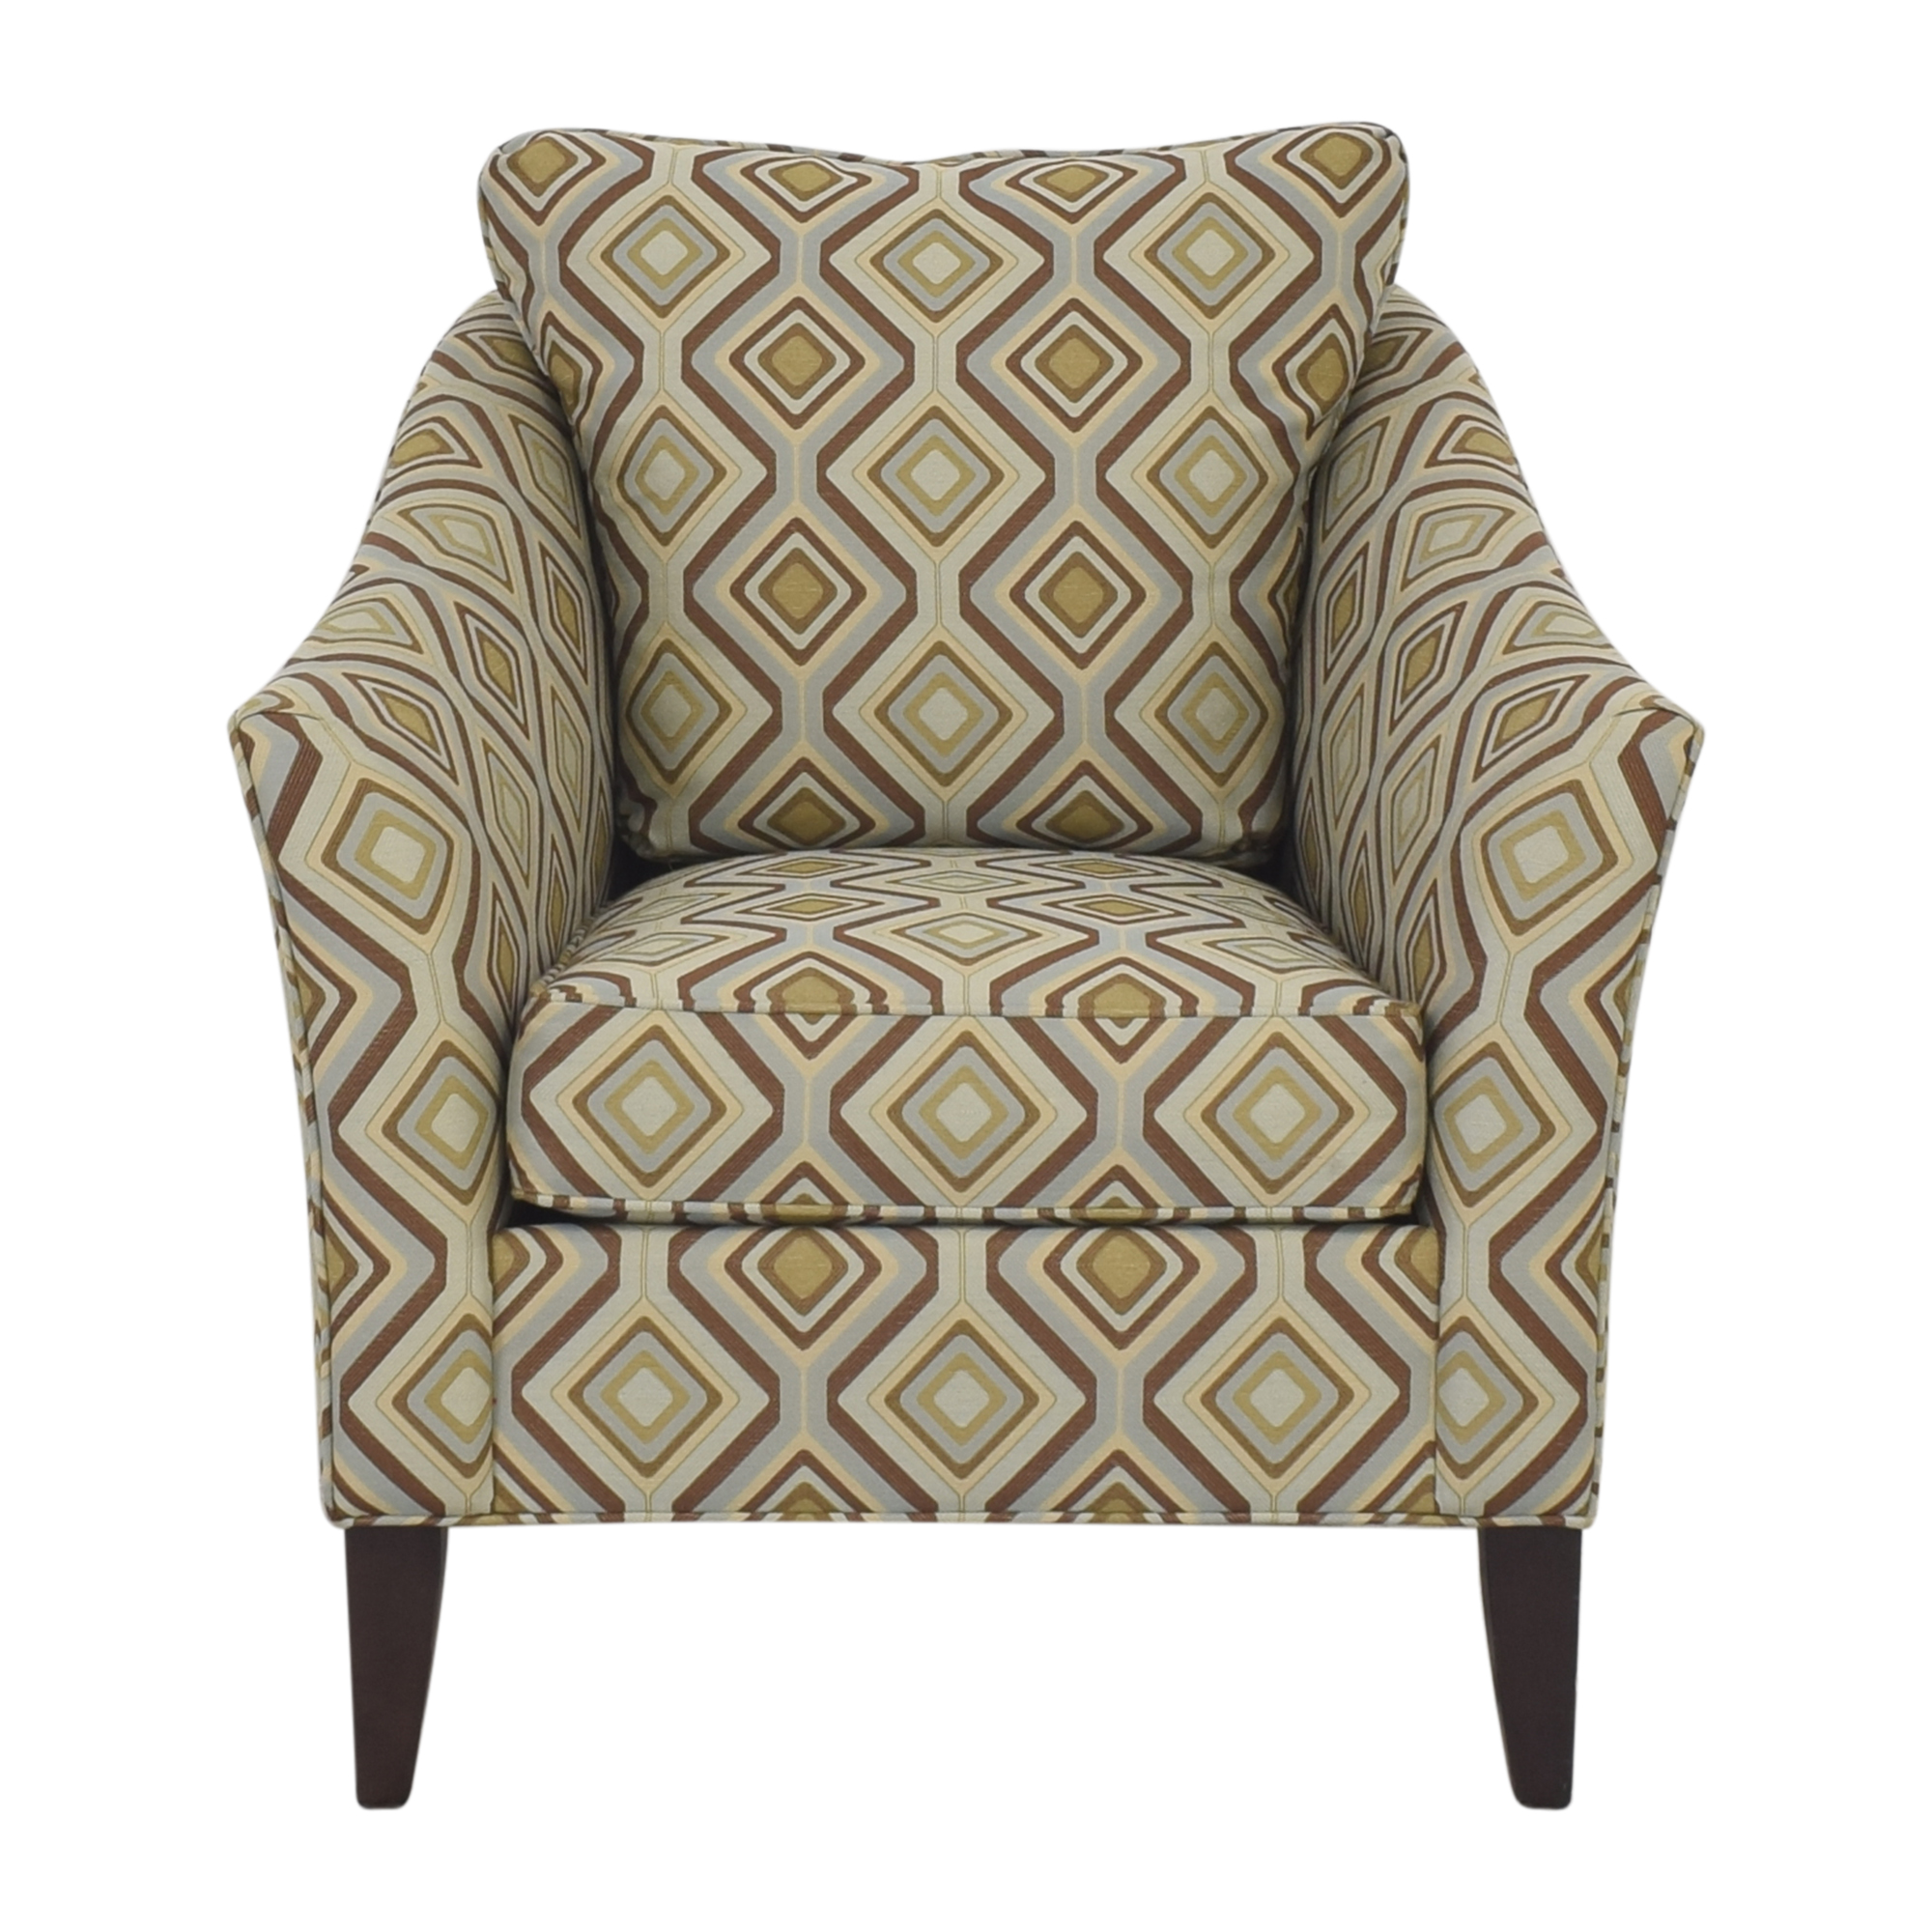 Ethan Allen Upholstered Arm Chair / Accent Chairs